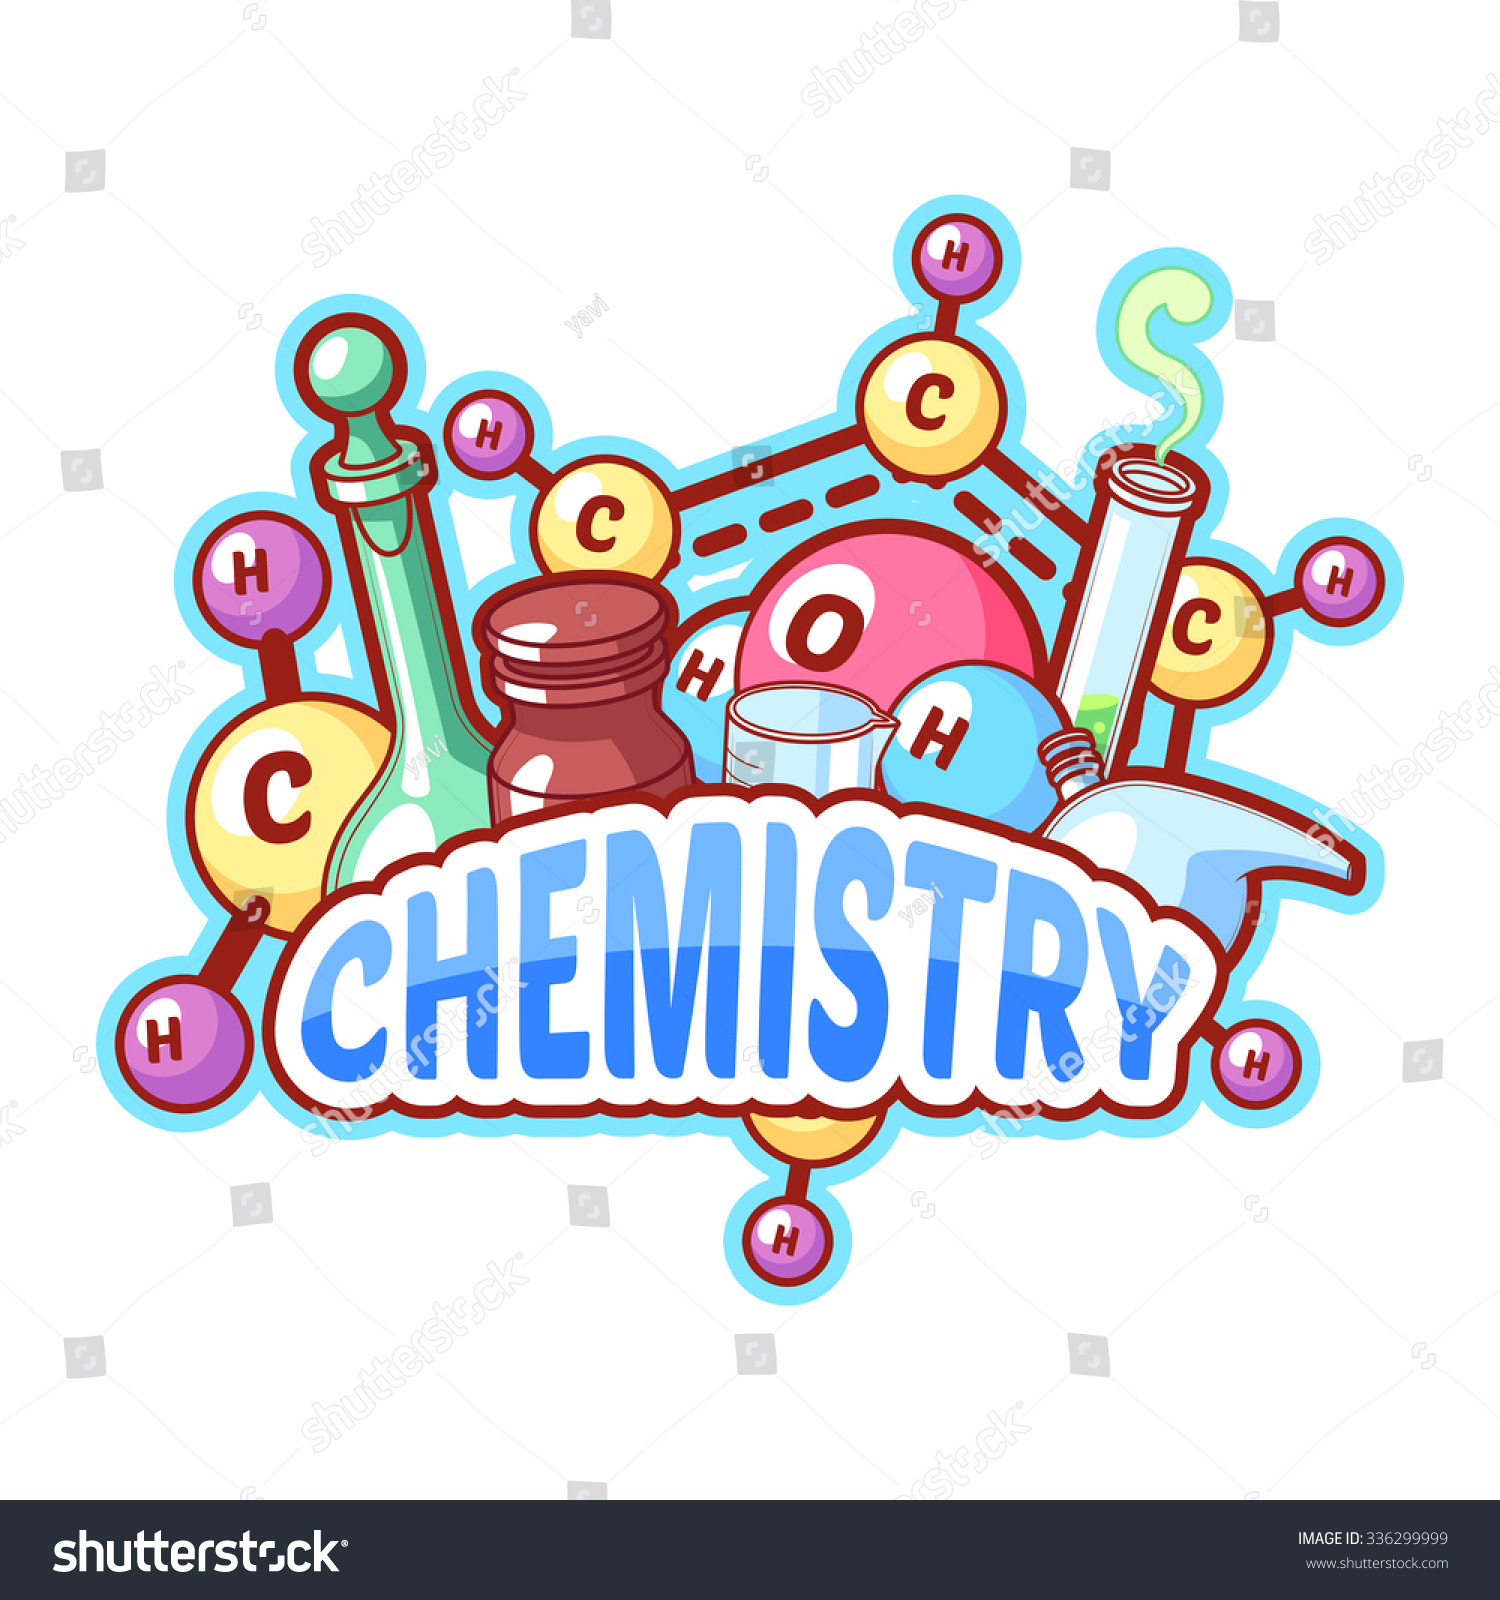 Chemistry Title Chemical Elements Flasks On Stock Vector 336299999 pertaining to Clip Art Poster Design